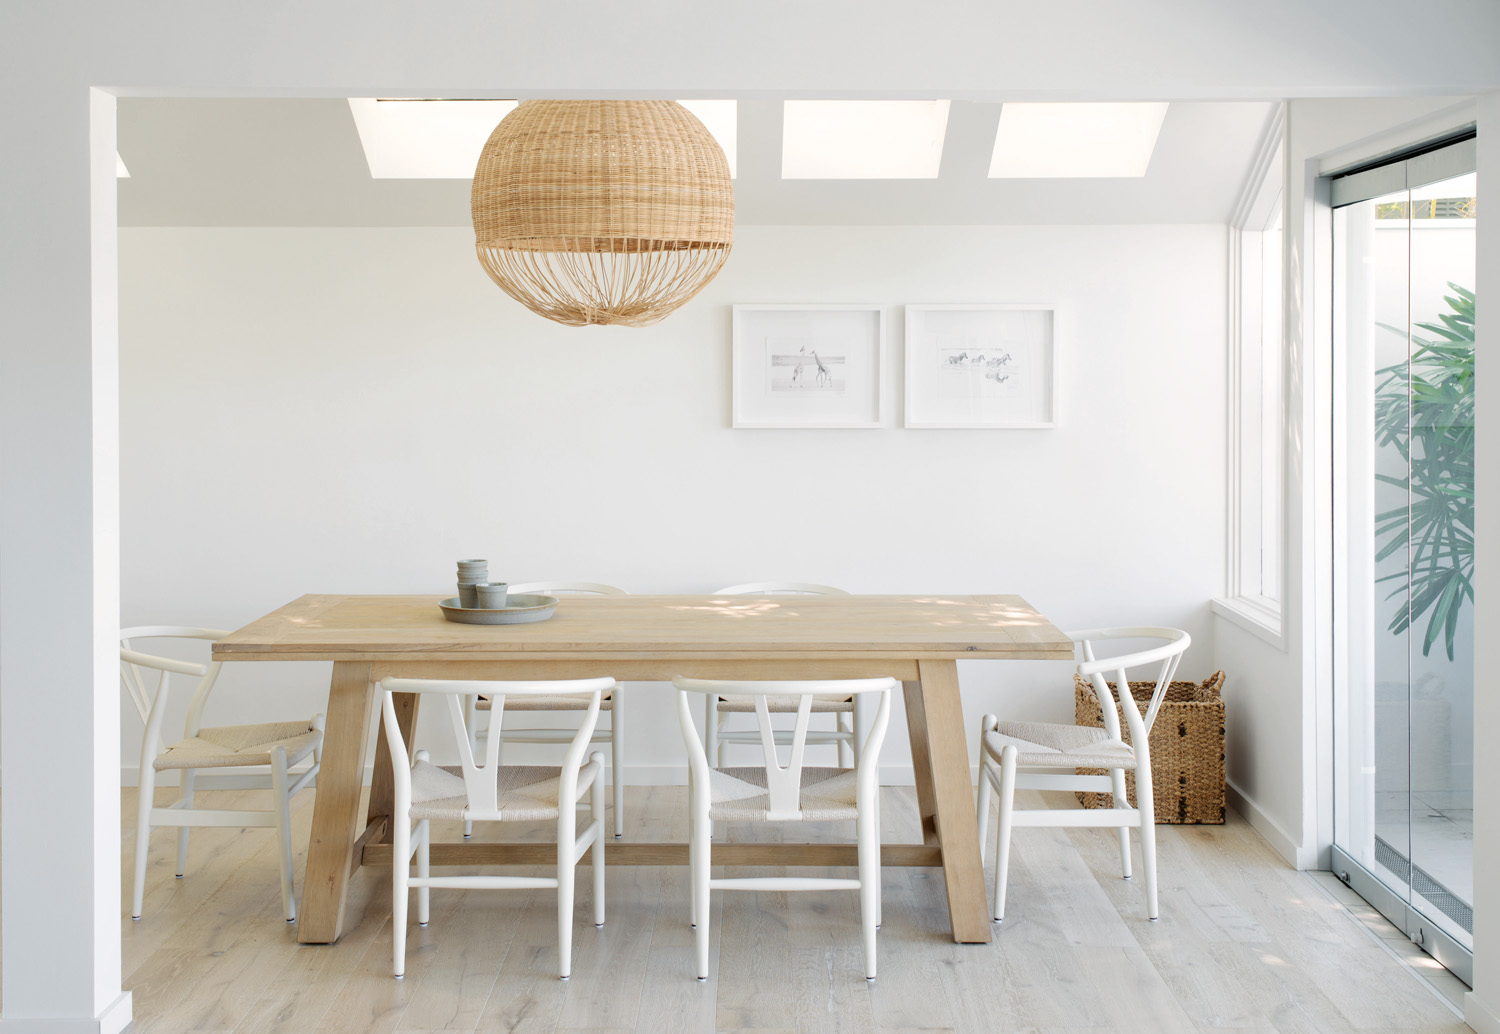 We love: The impressive dining room table surrounded by Wegner's classic Wishbone chairs